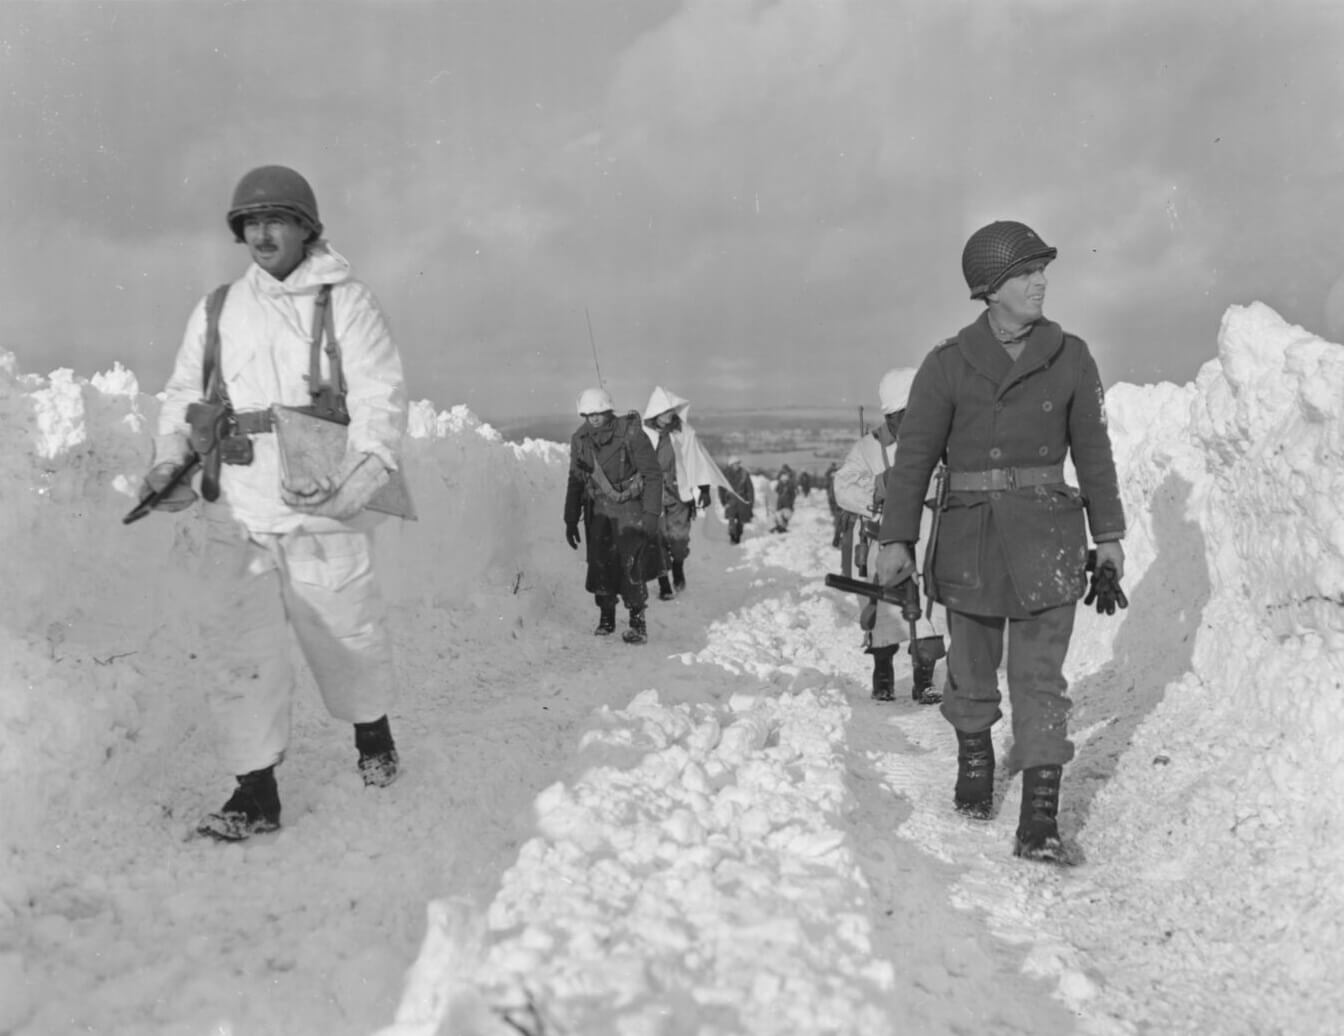 Battle of the Bulge: M3 SMG in snow outside of Bastogne